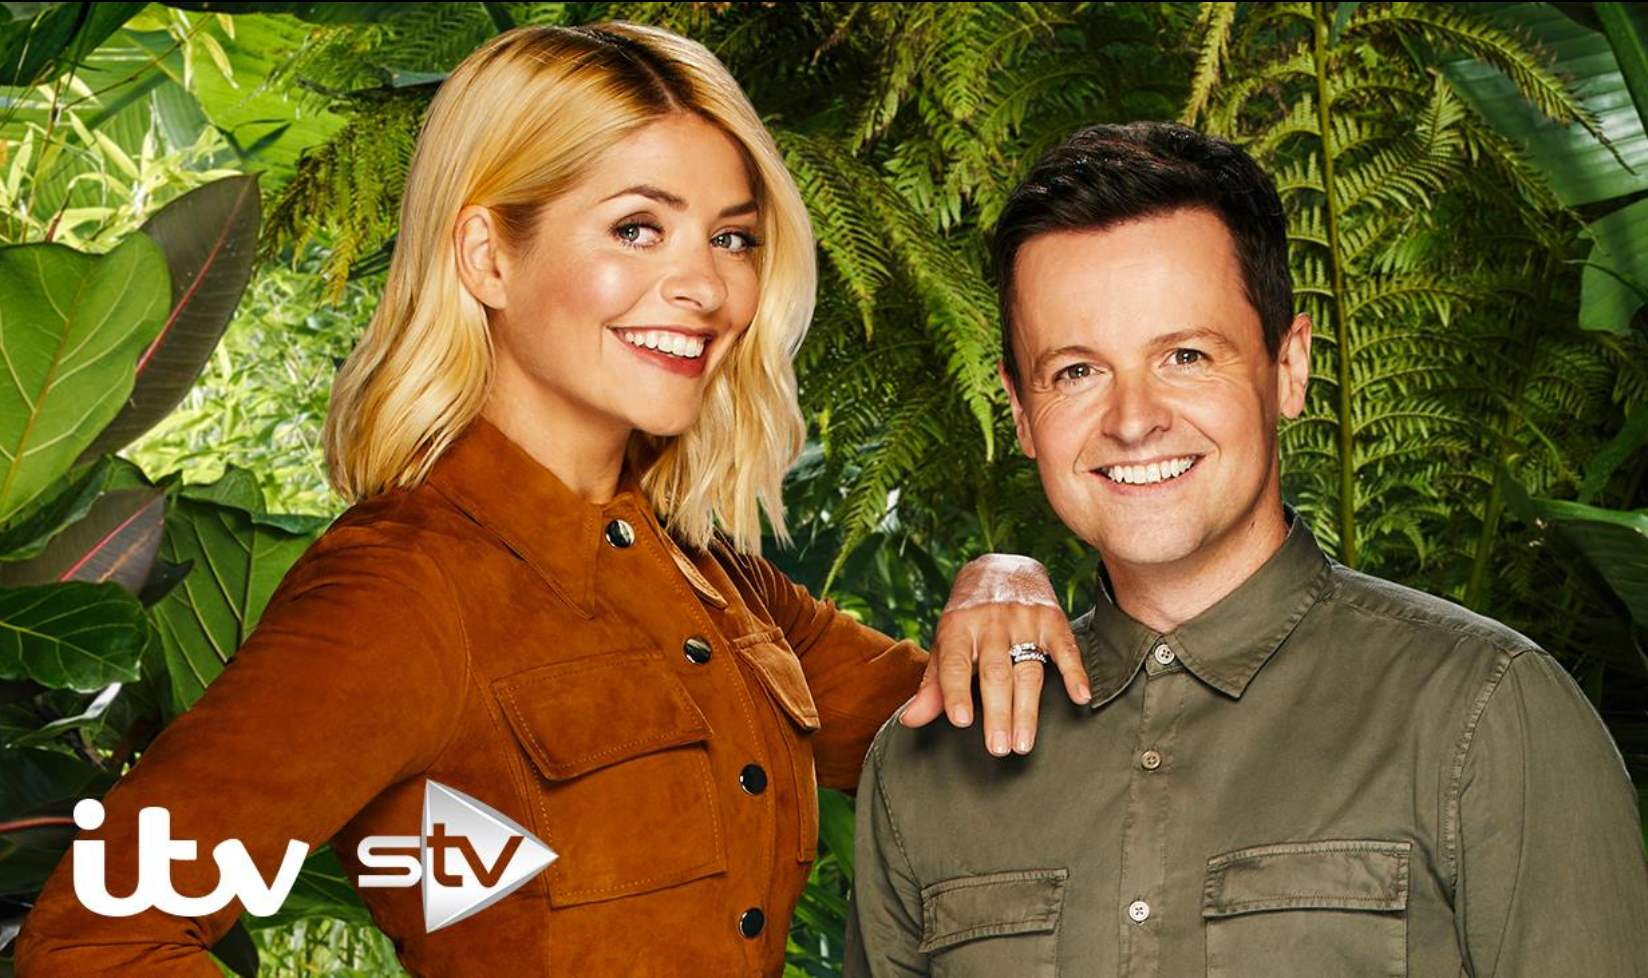 I'm A Celebrity Get Me Out Of Here